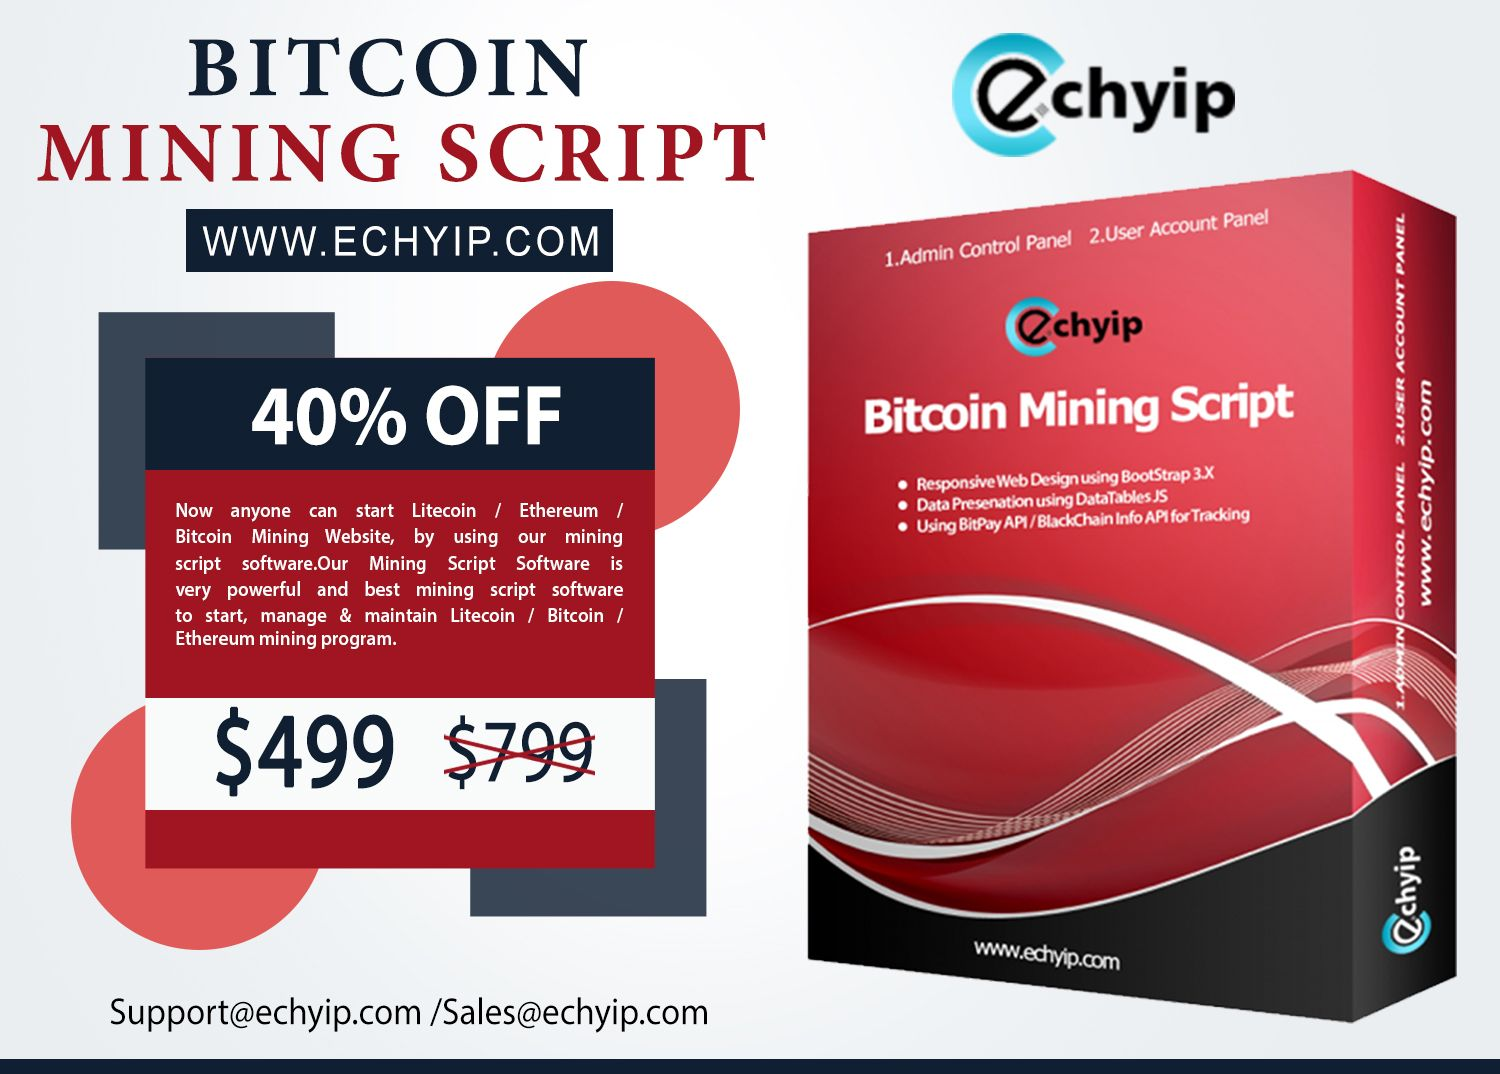 Now, you can make a super-fast bitcoin mining website at a